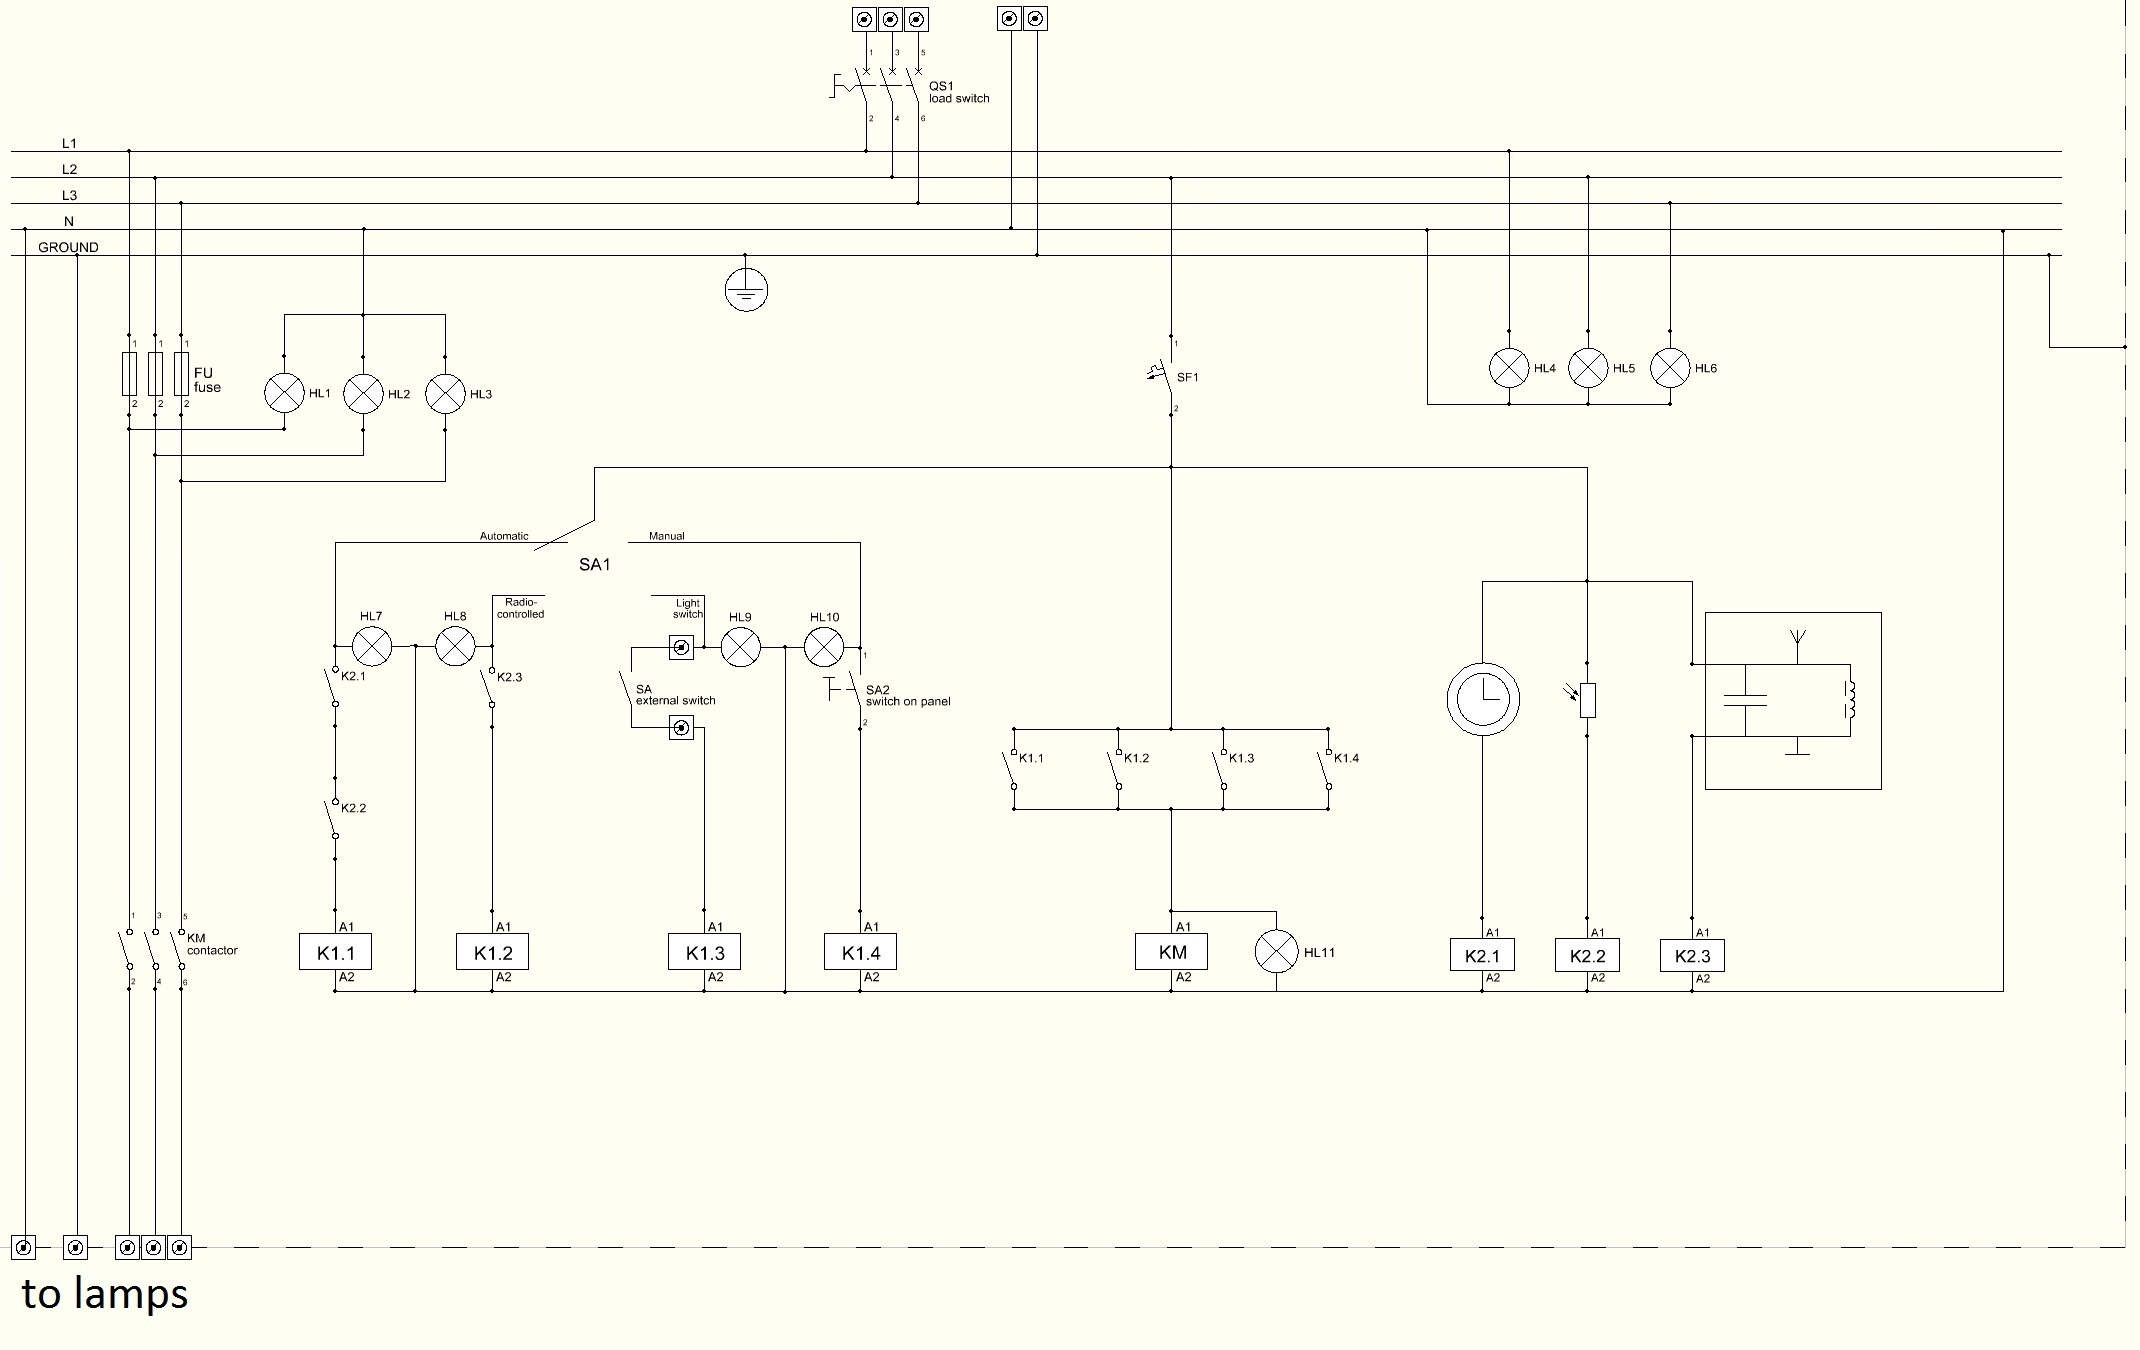 wiring control diagram wiring diagram img lofrans control box wiring diagram control box wiring diagram #3